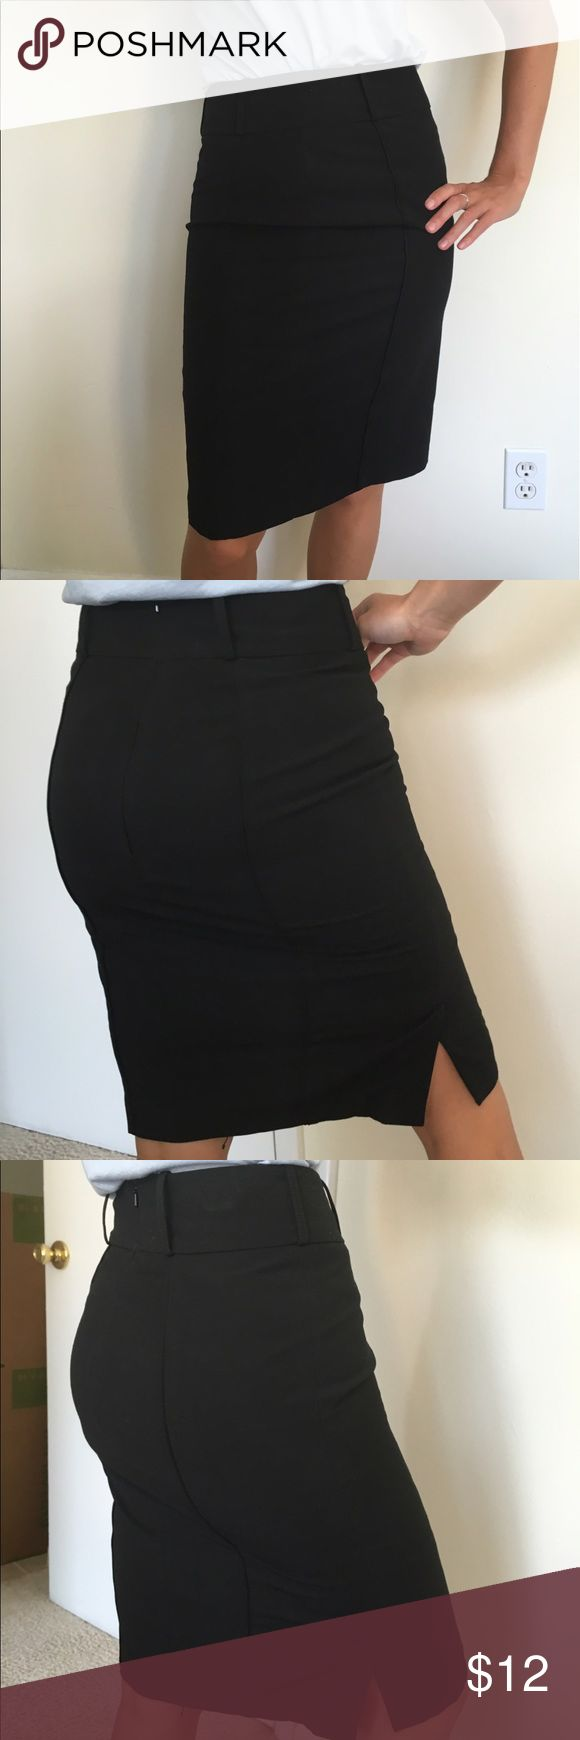 New Oasis (UK brand) Black lined pencil skirt Work appropriate flattering pencil skirt purchased in London. Will fit US size 2. New condition. oasis Skirts Pencil